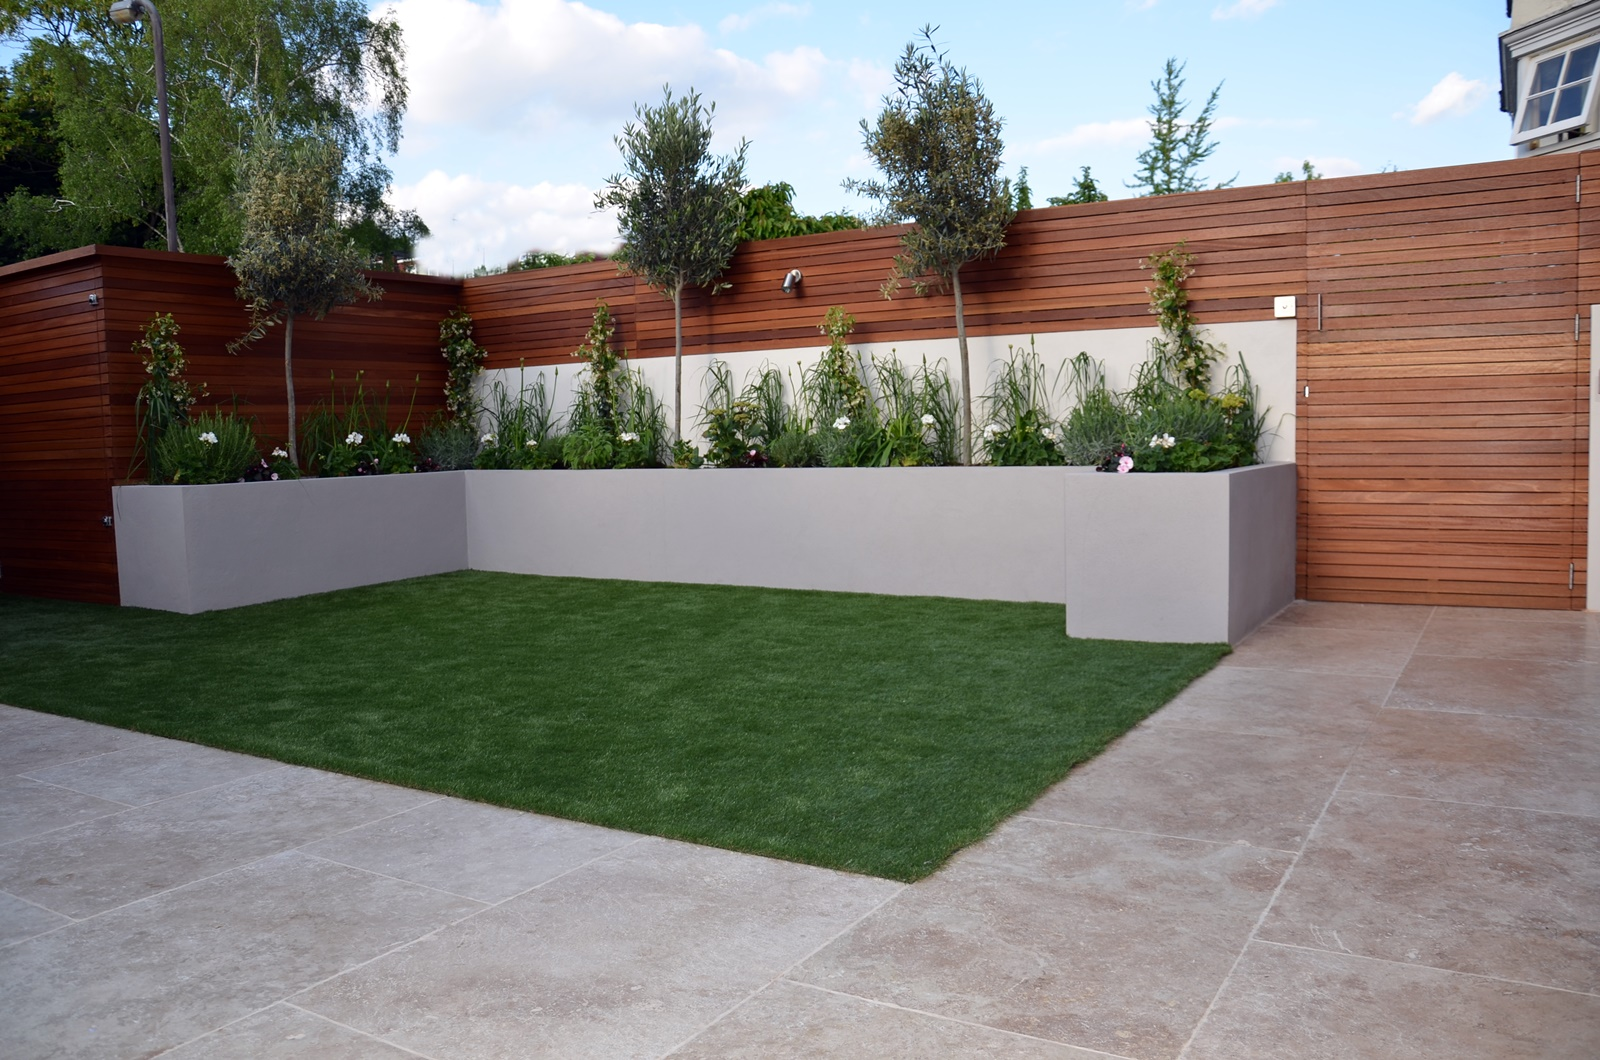 Modern garden design fulham chelsea clapham battersea for Small patio design plans